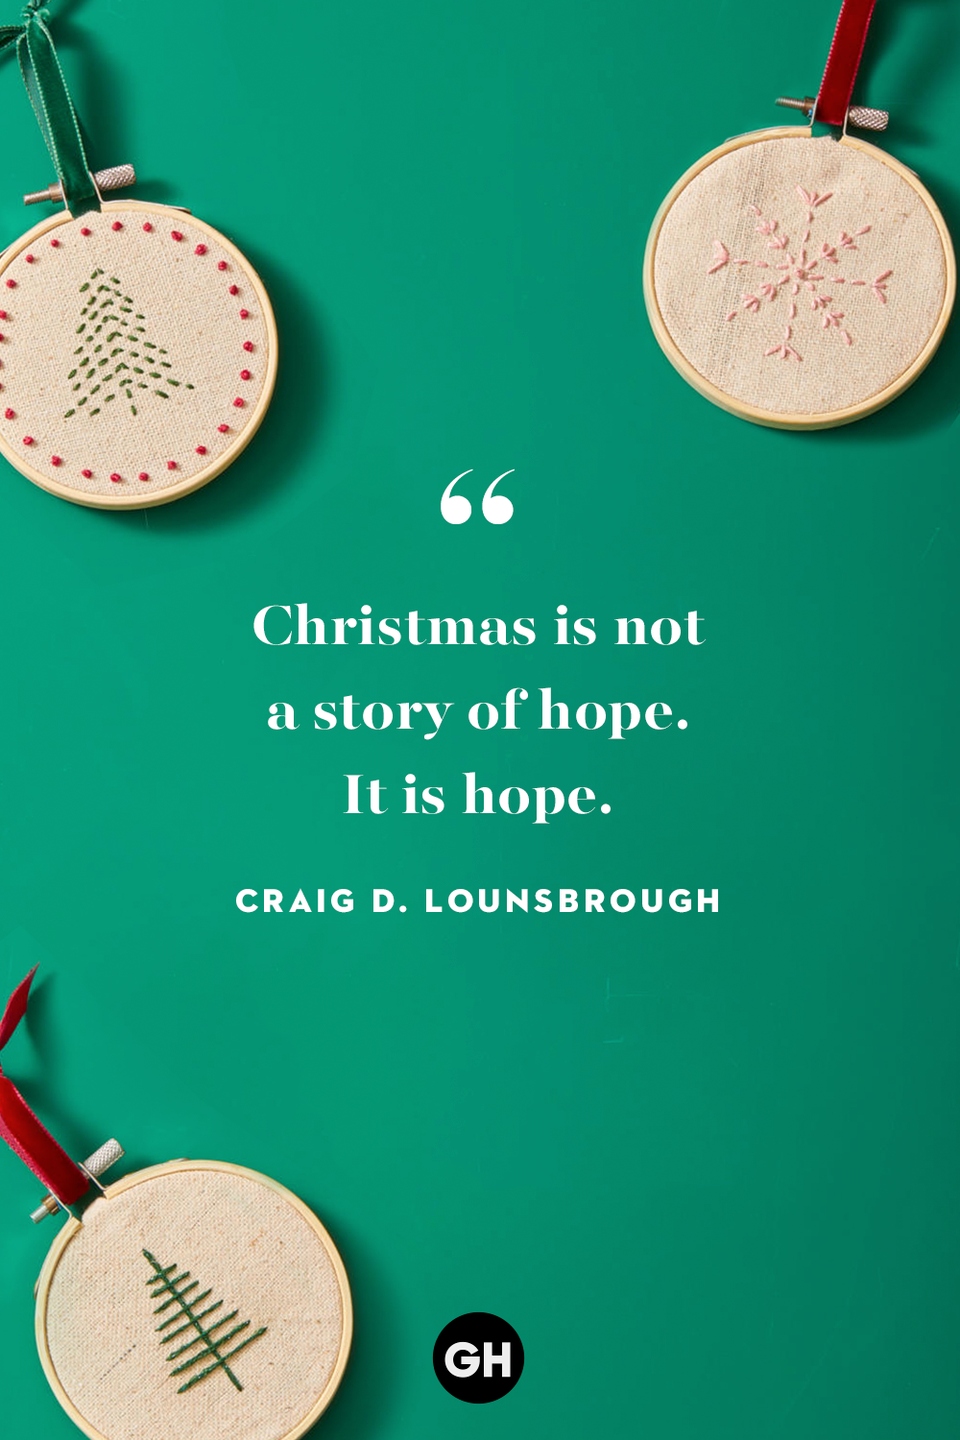 <p>Christmas is not a story of hope. It is hope.</p>